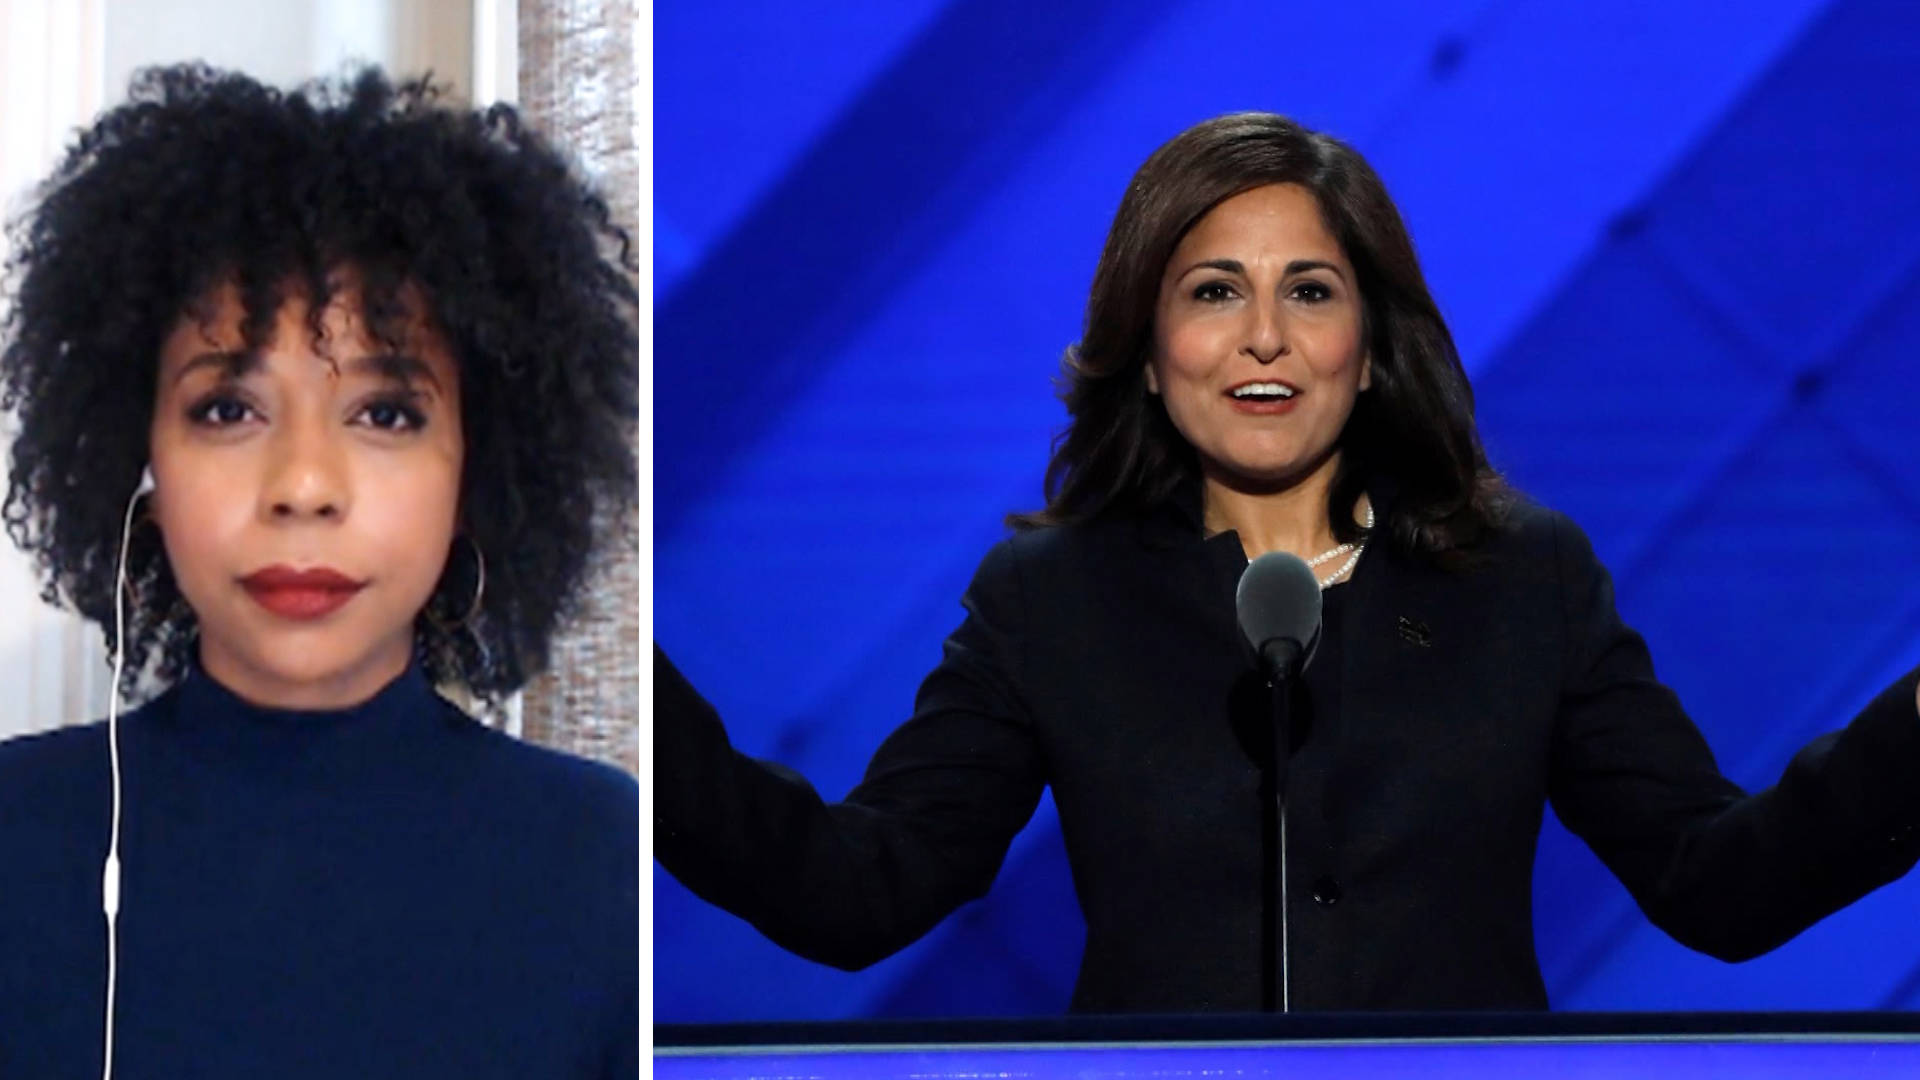 Read more about the article Where Are the Progressives? Briahna Joy Gray on Neera Tanden & Other Biden Picks for Economic Team